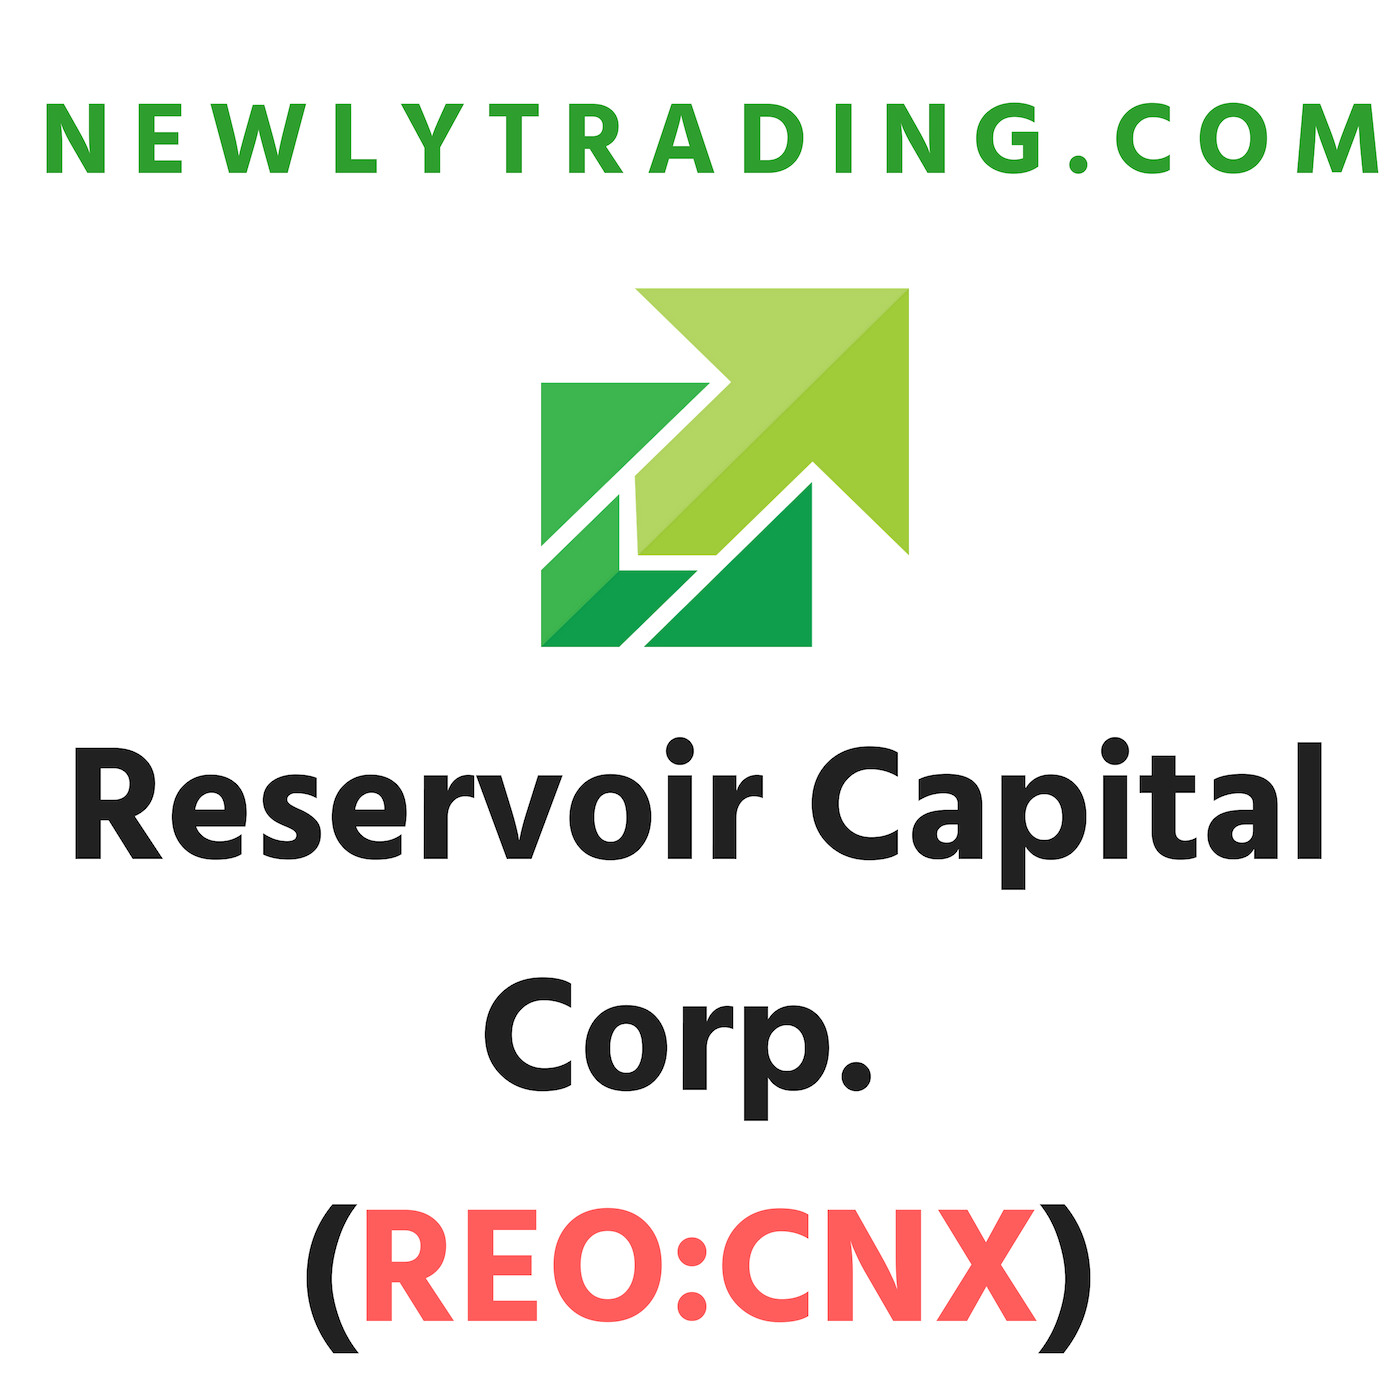 Reservoir Capital Corp. (REO:CNX)